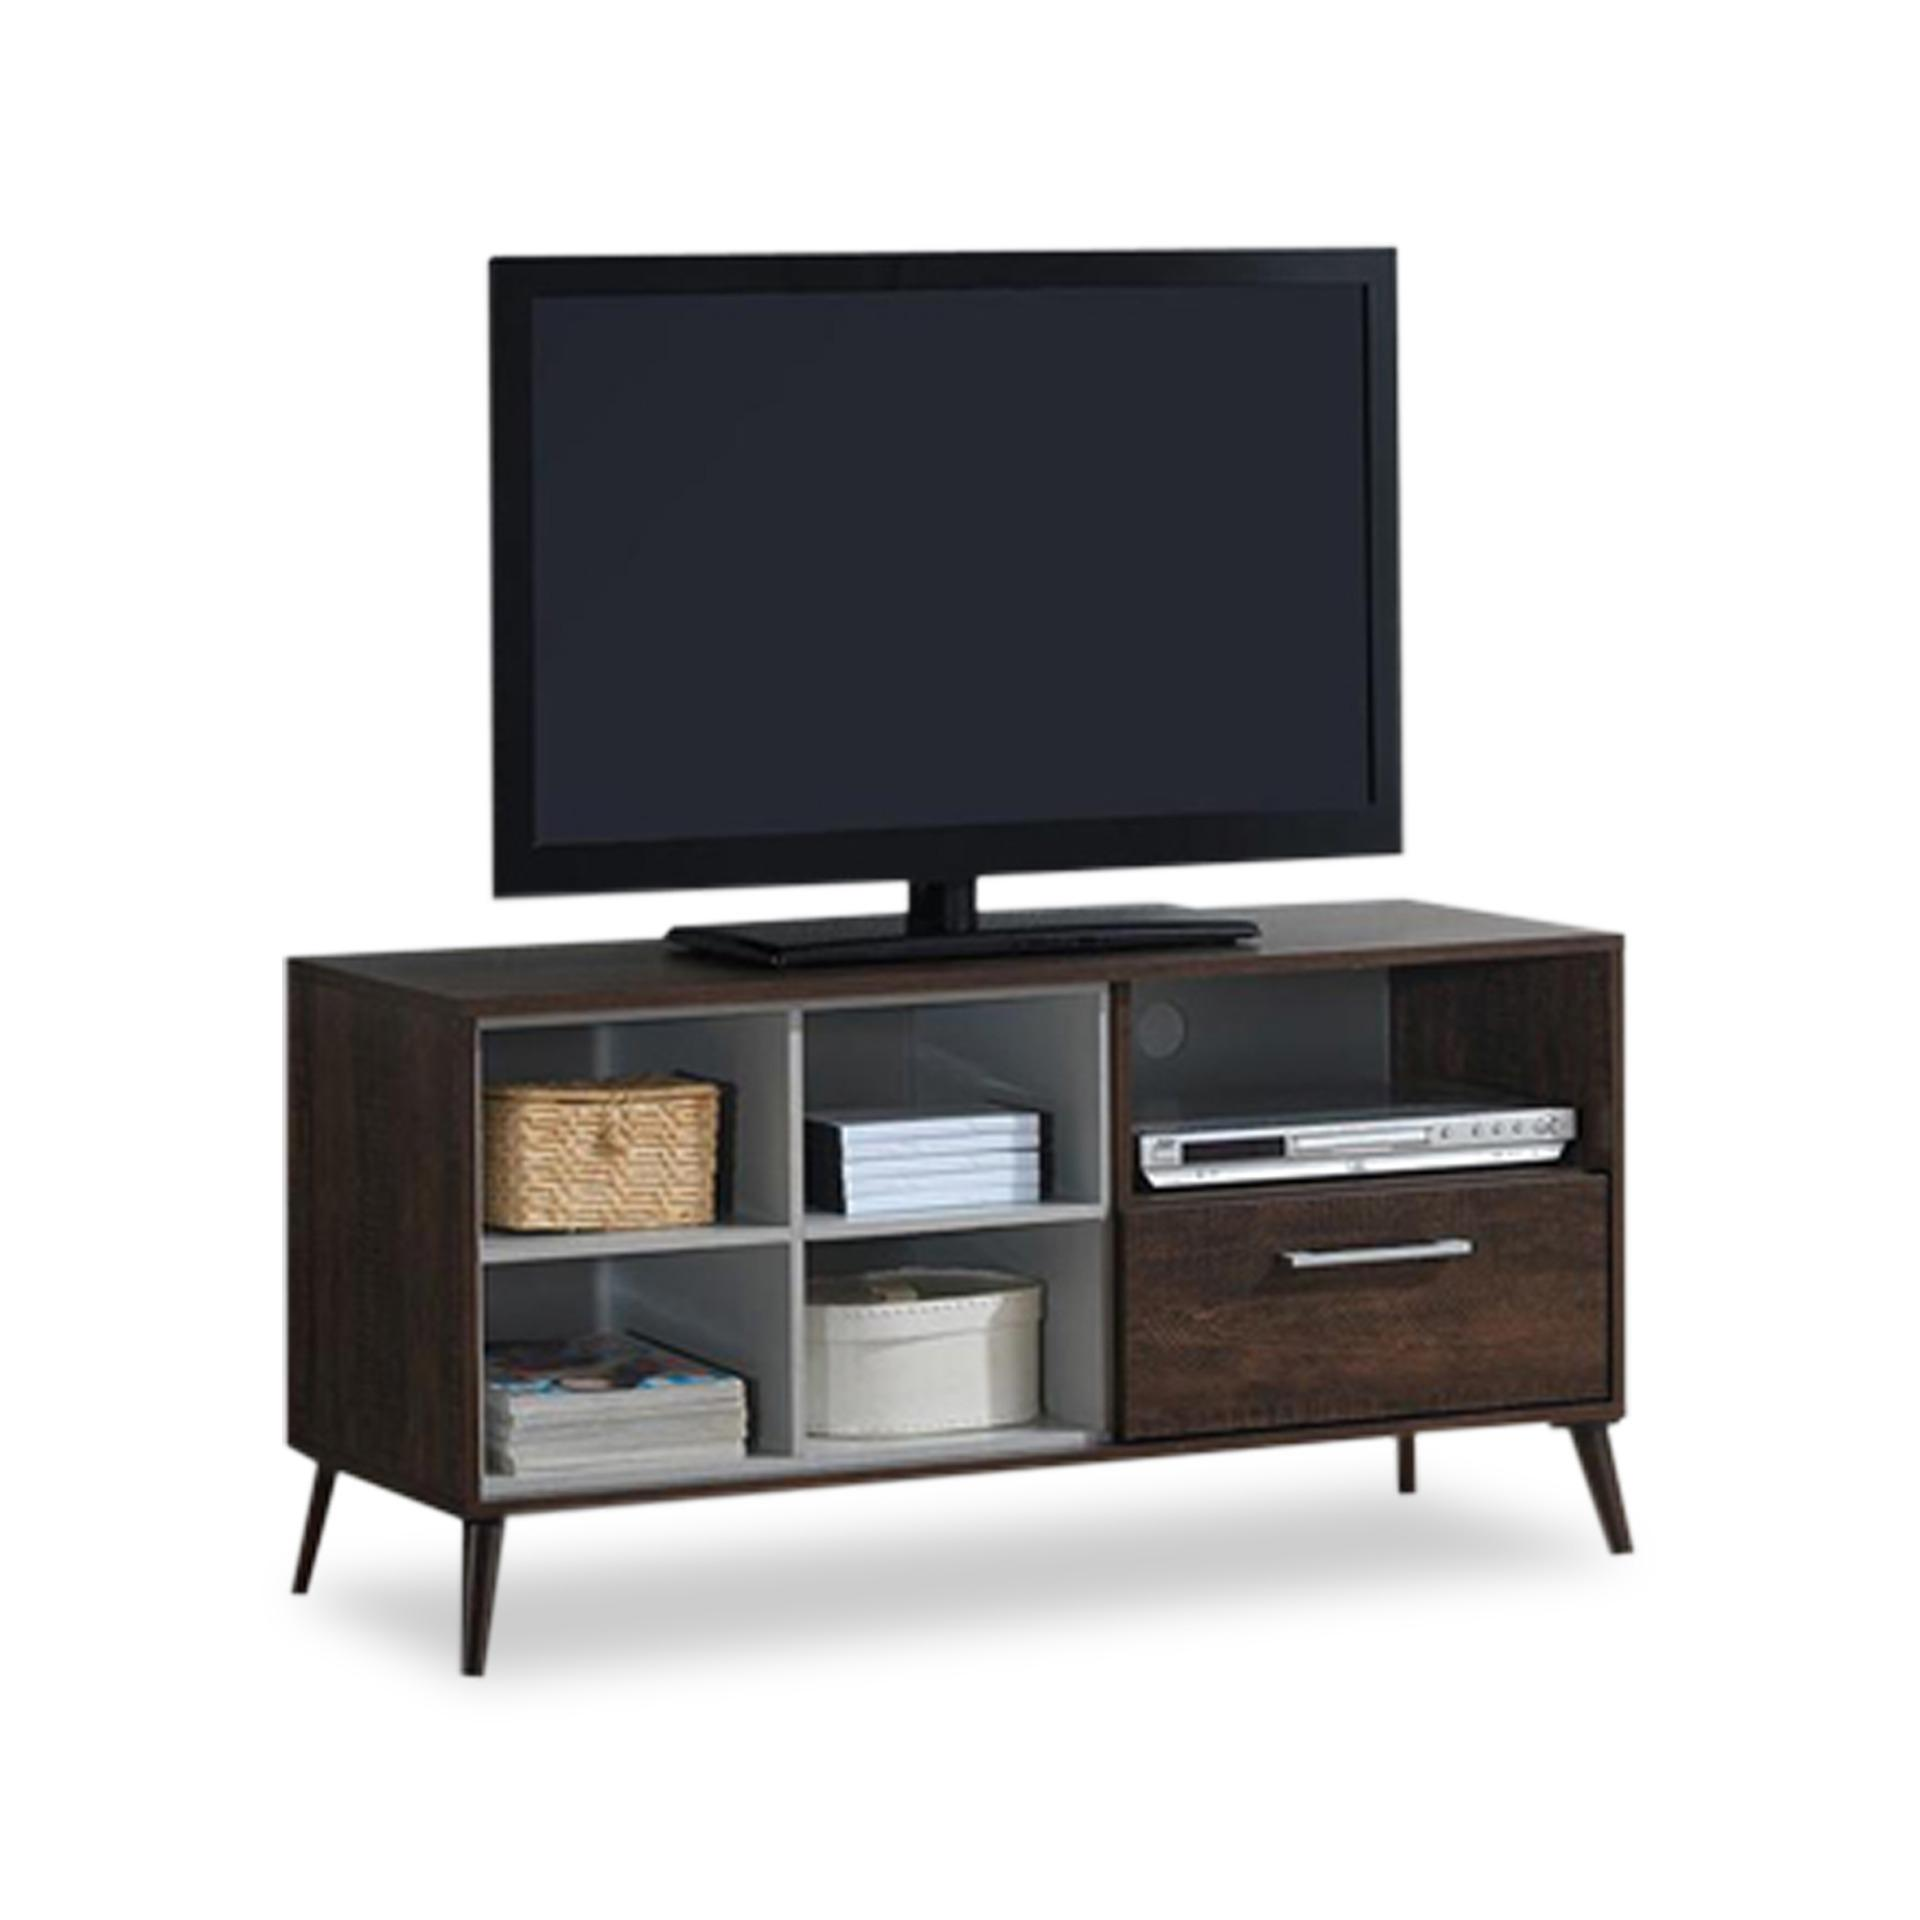 Manon TV Cabinet 1.1m (FREE DELIVERY)(FREE ASSEMBLY)